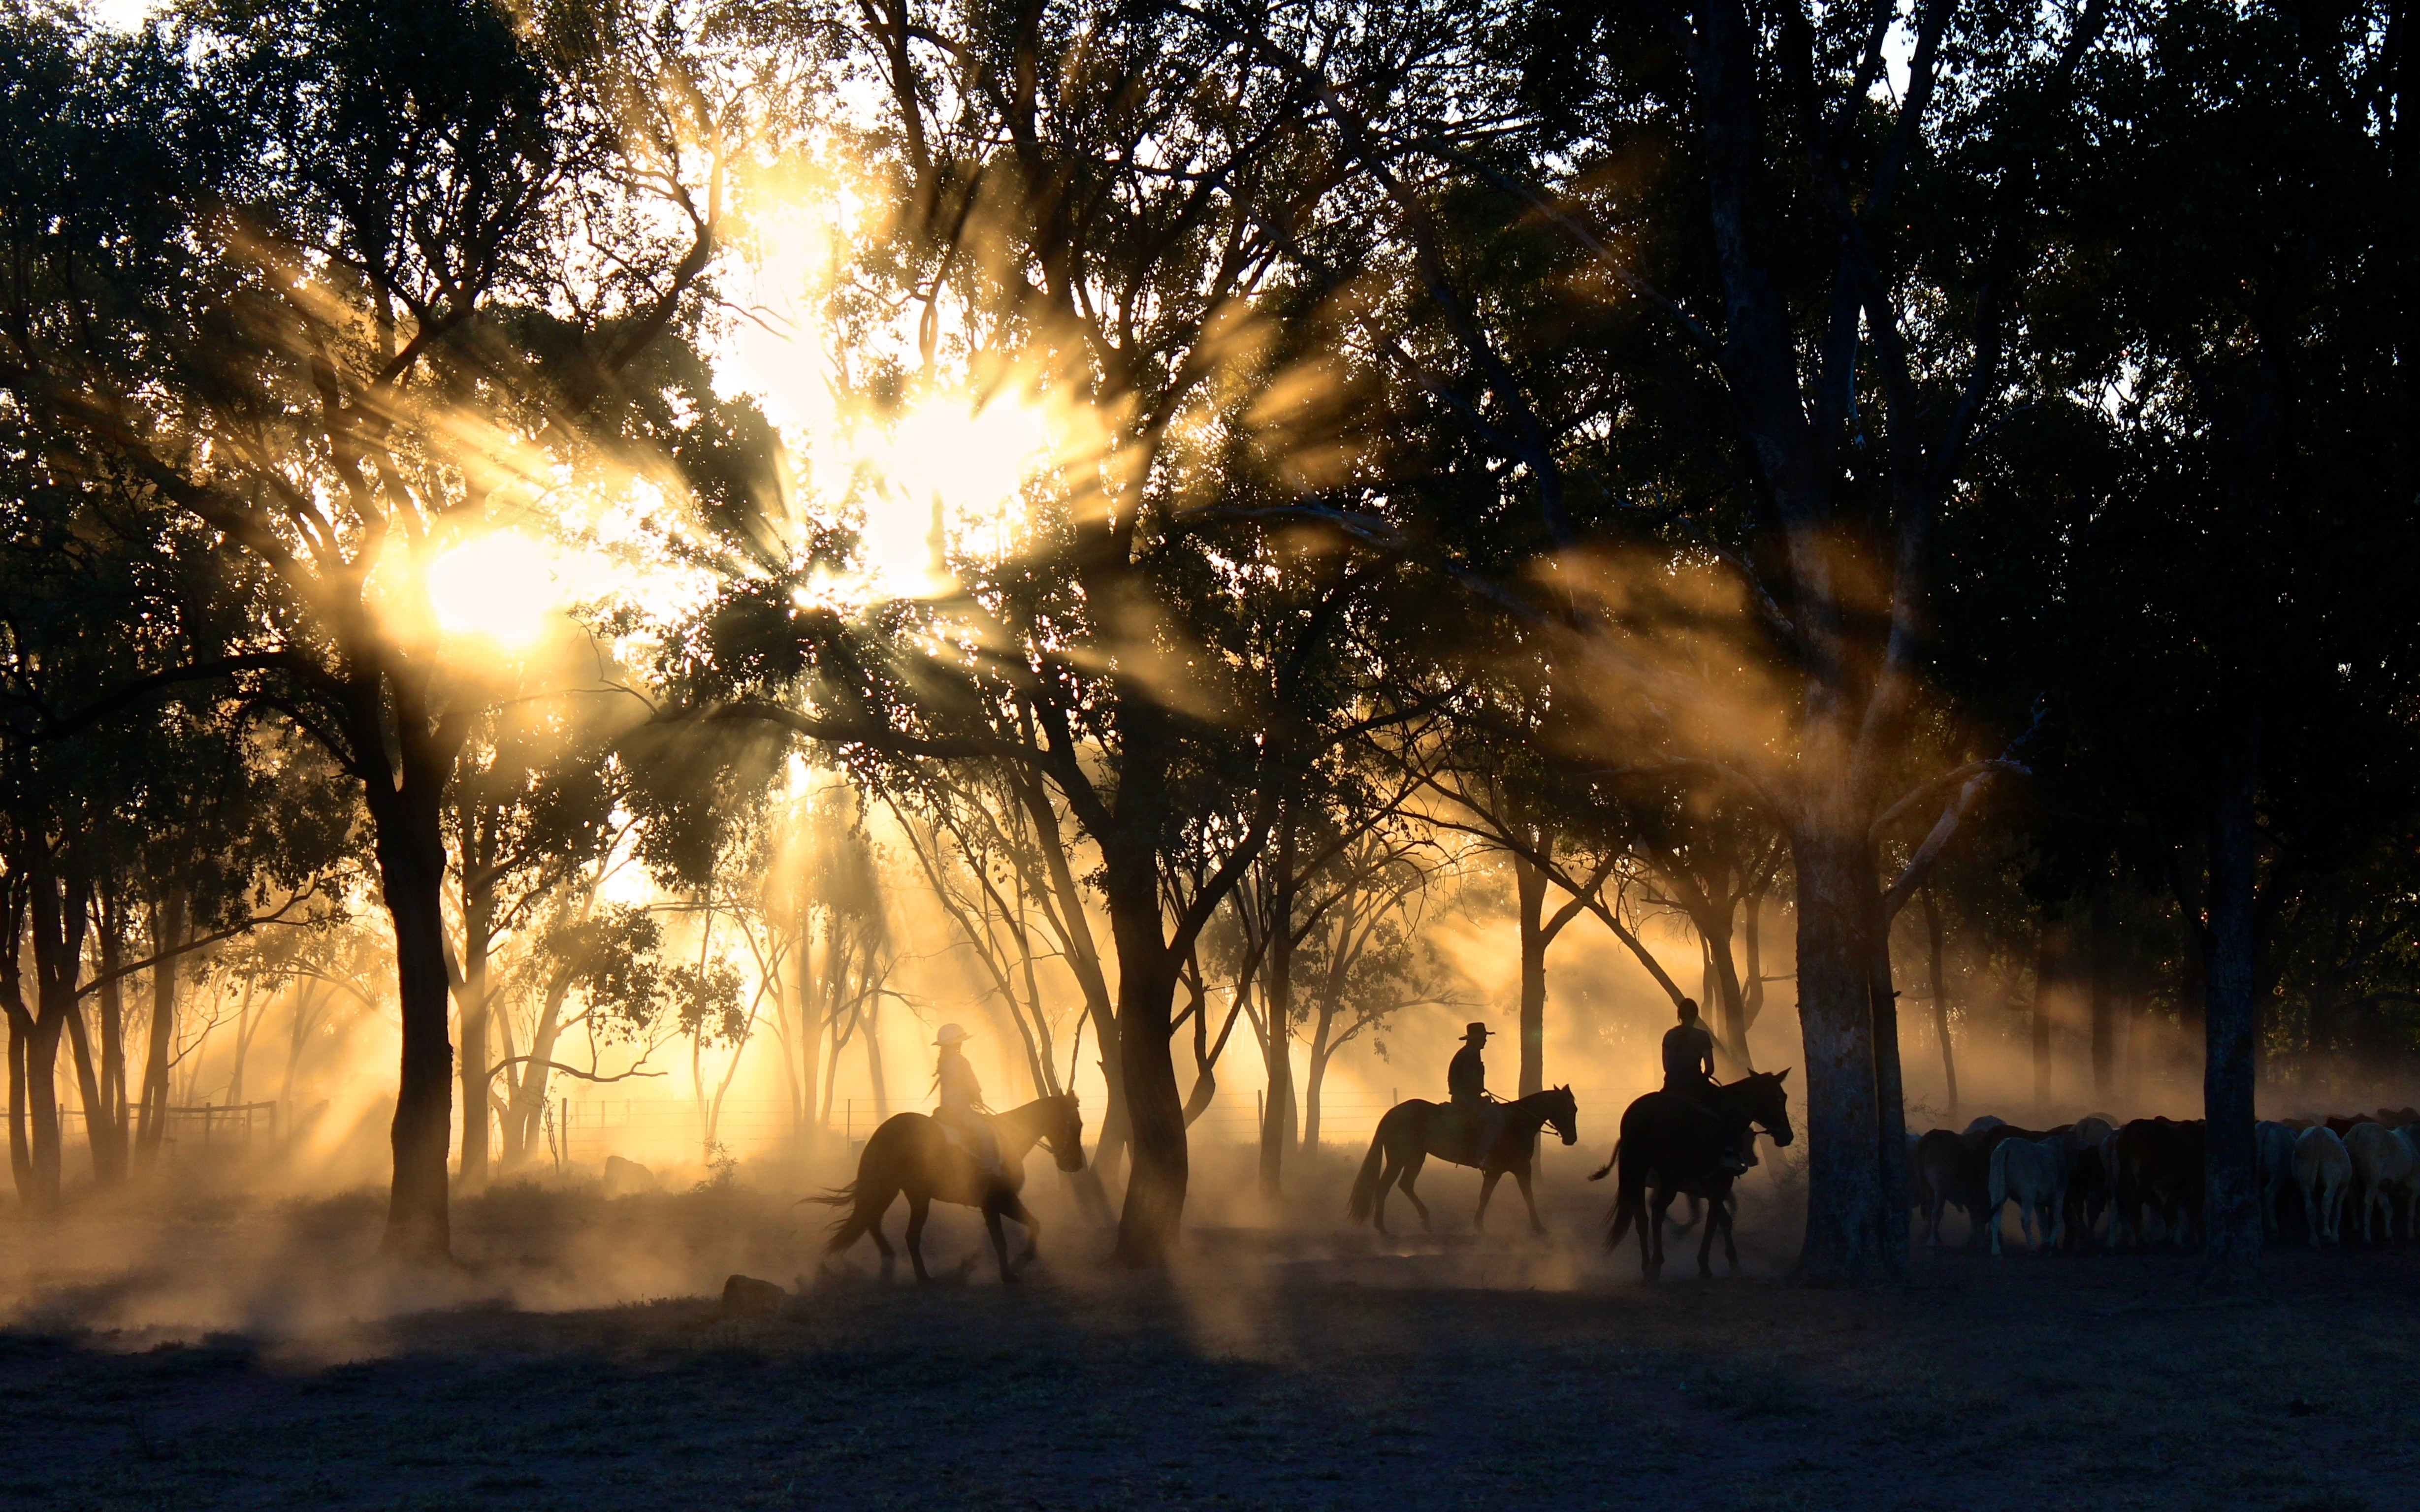 Silhouettes of riders on horseback against the radiant sun breaking through the trees